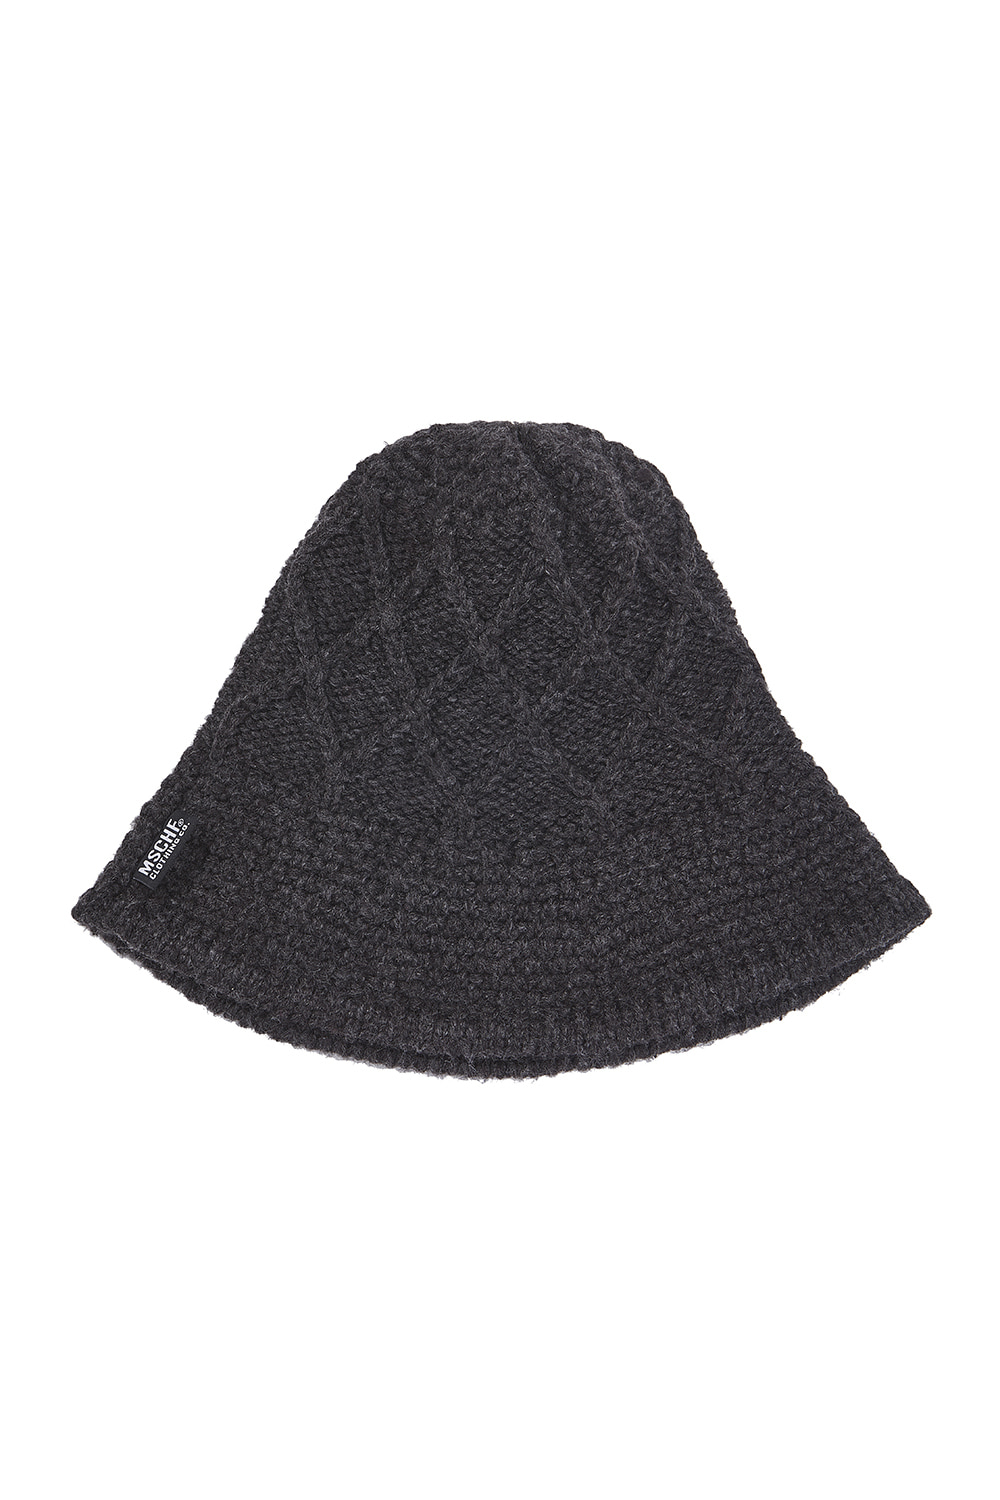 WEAVED KNIT BUCKET HAT_gray